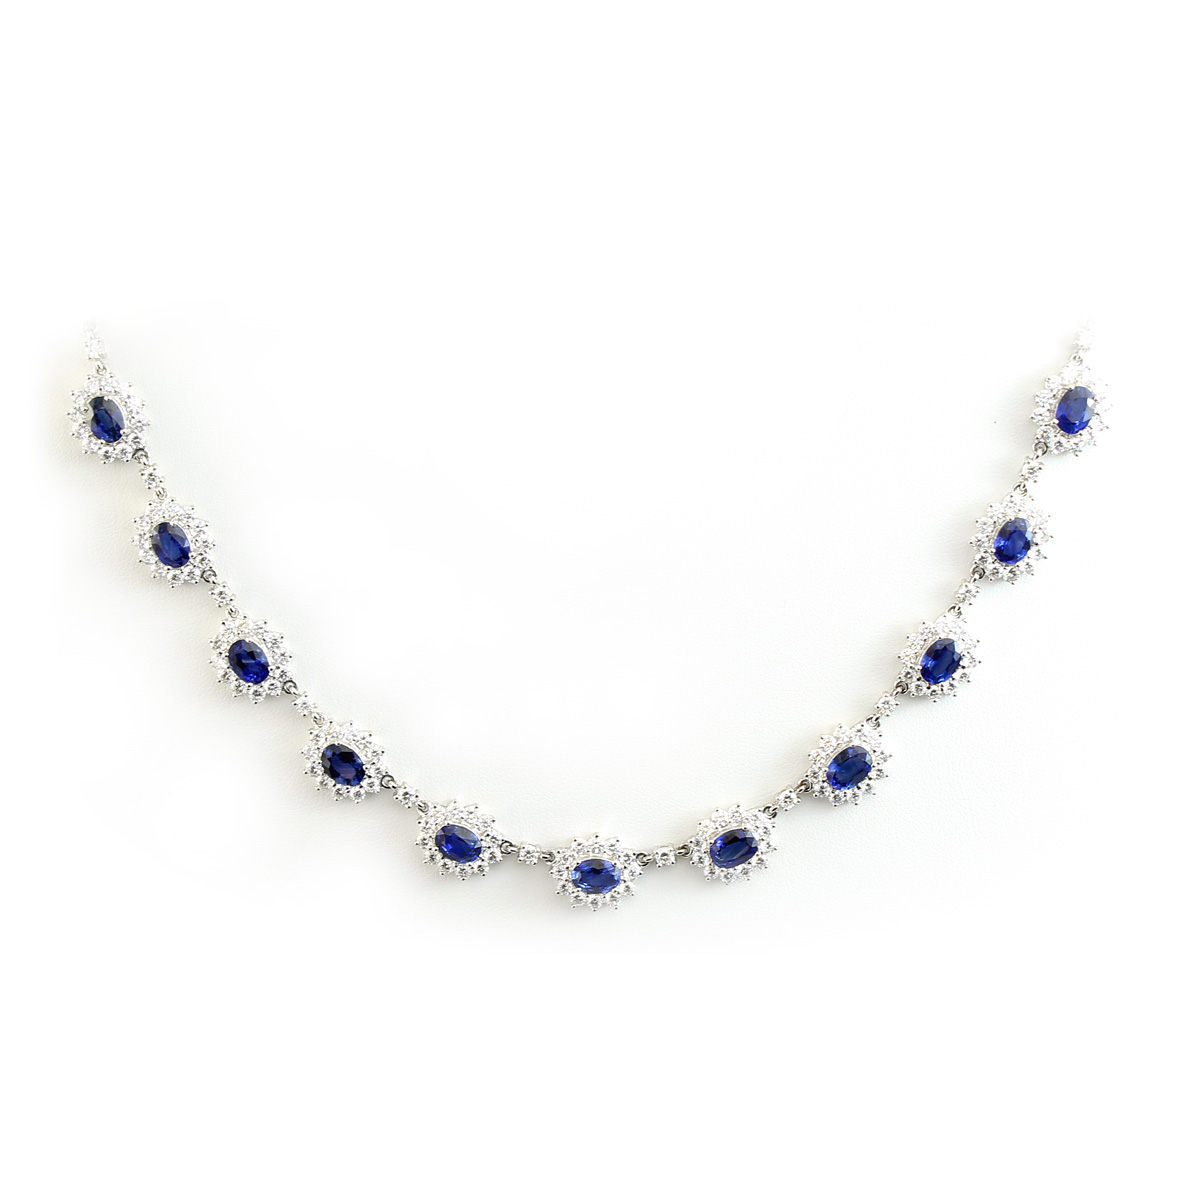 18 Karat White Gold Diamond and Sapphire Link Necklace